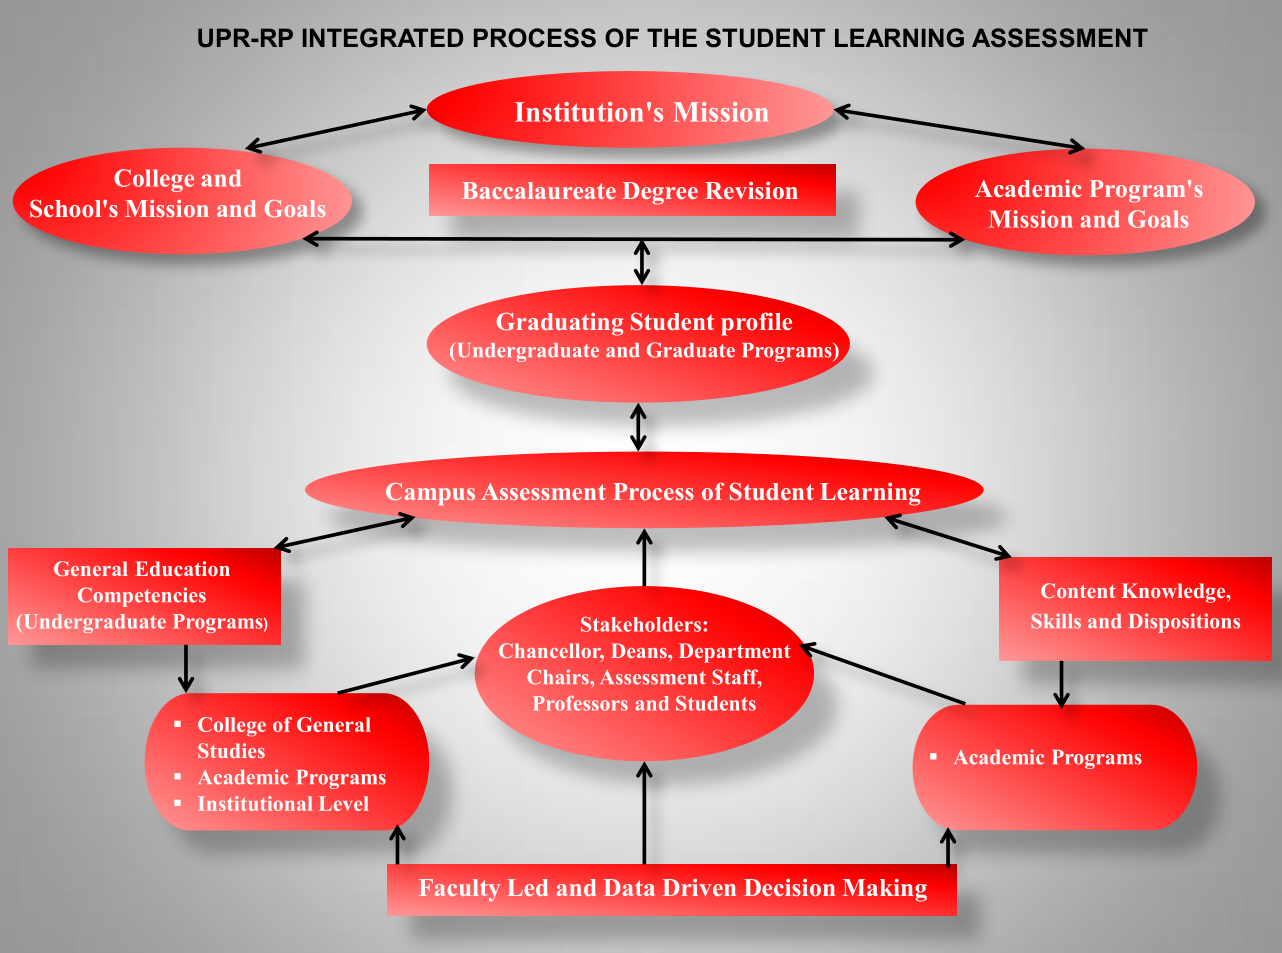 Integrated Process of the Student Learning Assessment